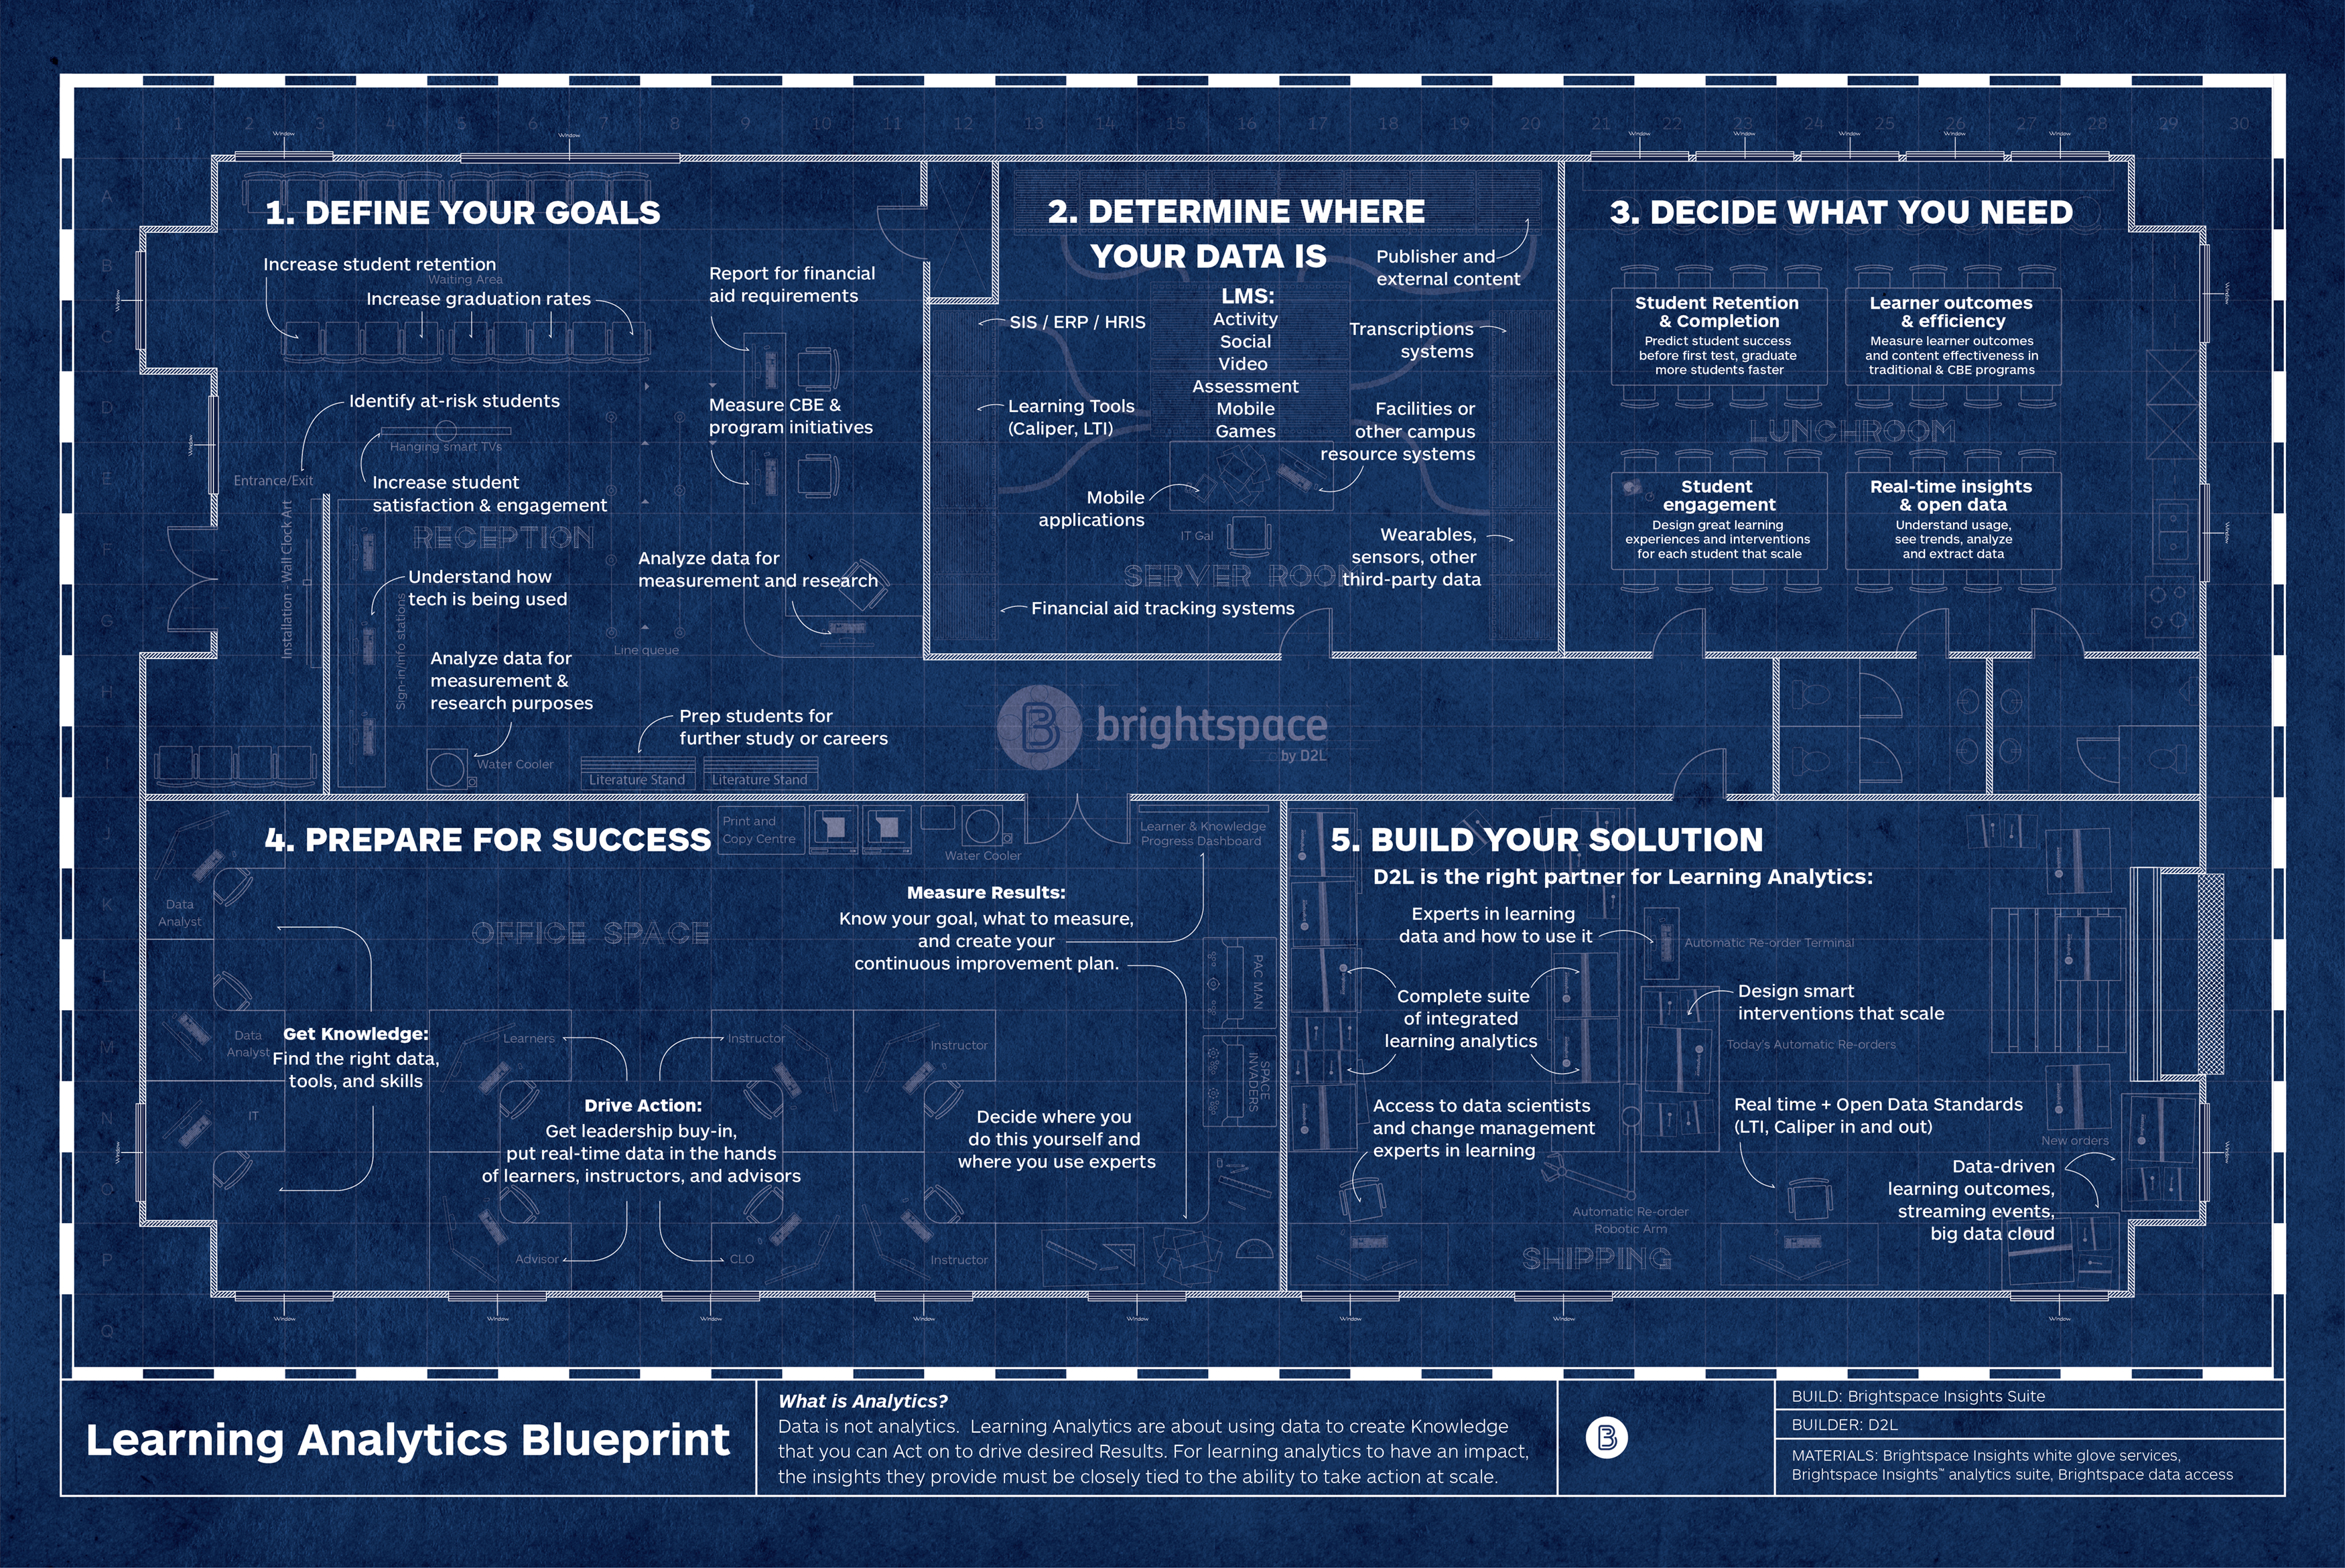 D2l launches the learning analytics blueprint to help organizations image available httpmarketwirelibrarymwgo201621811g083405imagesblueprintfin e1788bb02c479253bc1465a0d56ea5f6eg malvernweather Gallery